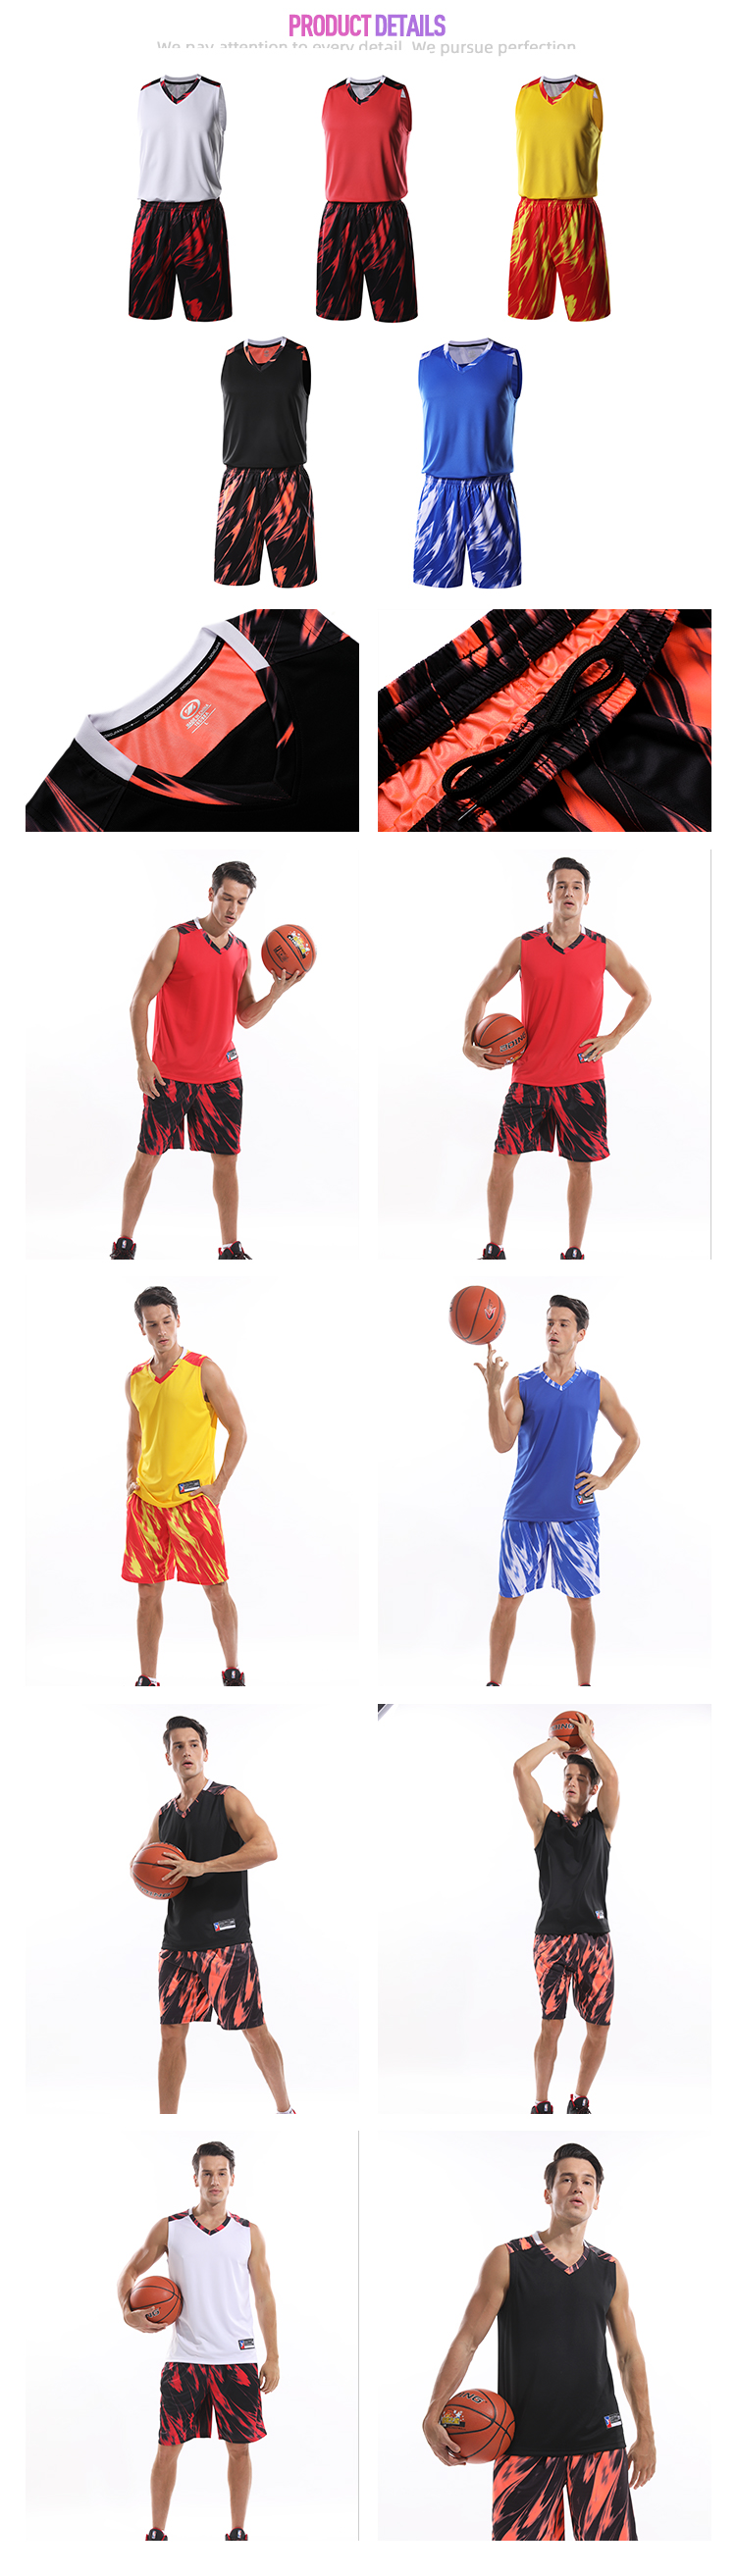 Aktive tragen korb ball kleidung set sublimation druck basketball jersey outfits